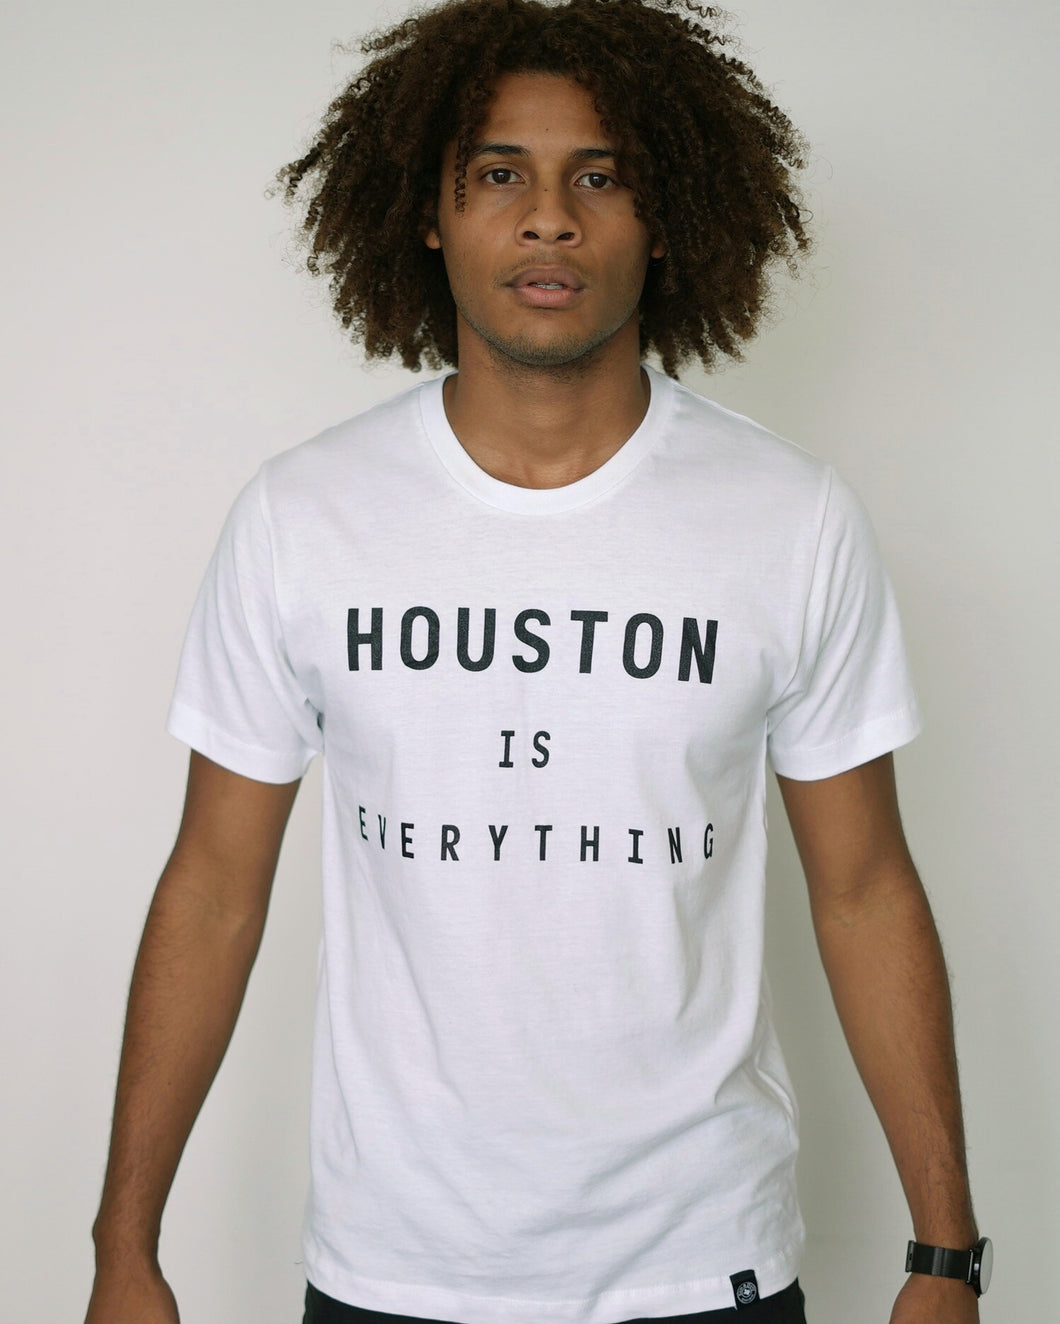 The Houston is Everything Tee (Unisex White/Black)